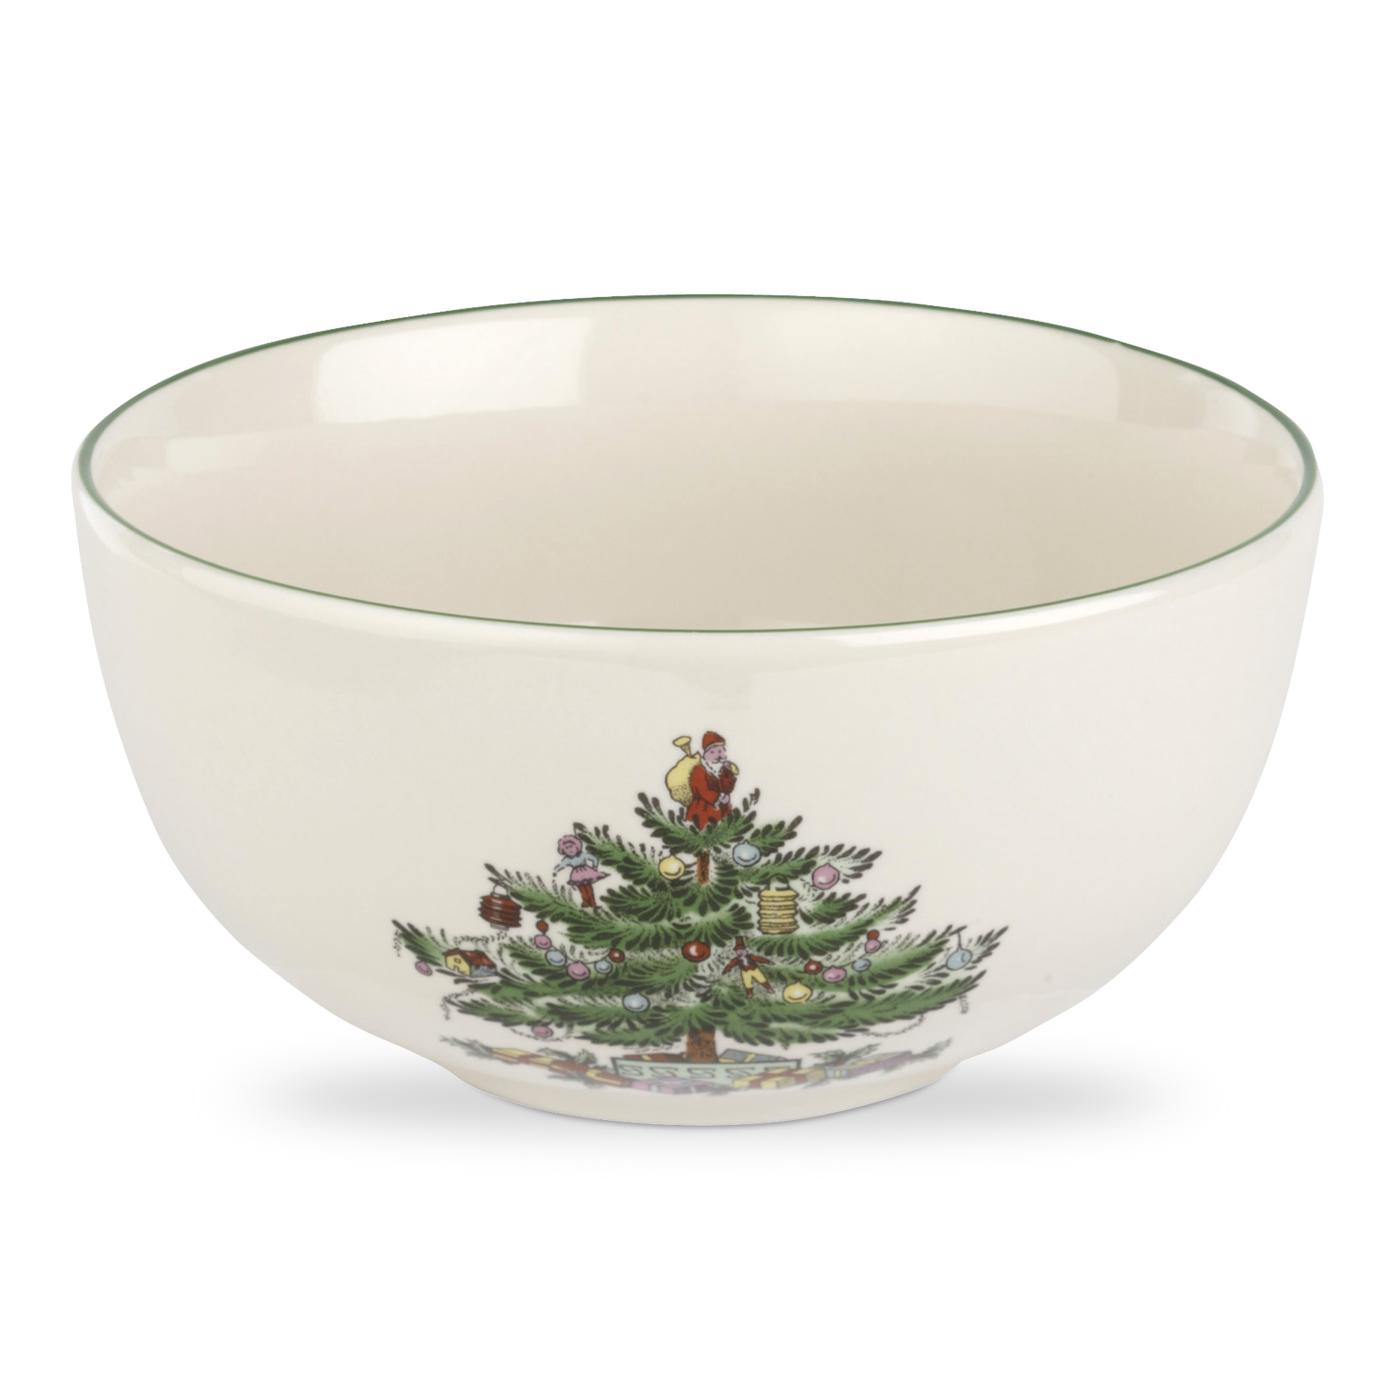 Spode Christmas Tree Set of 4 Fruit Salad Bowls image number 0